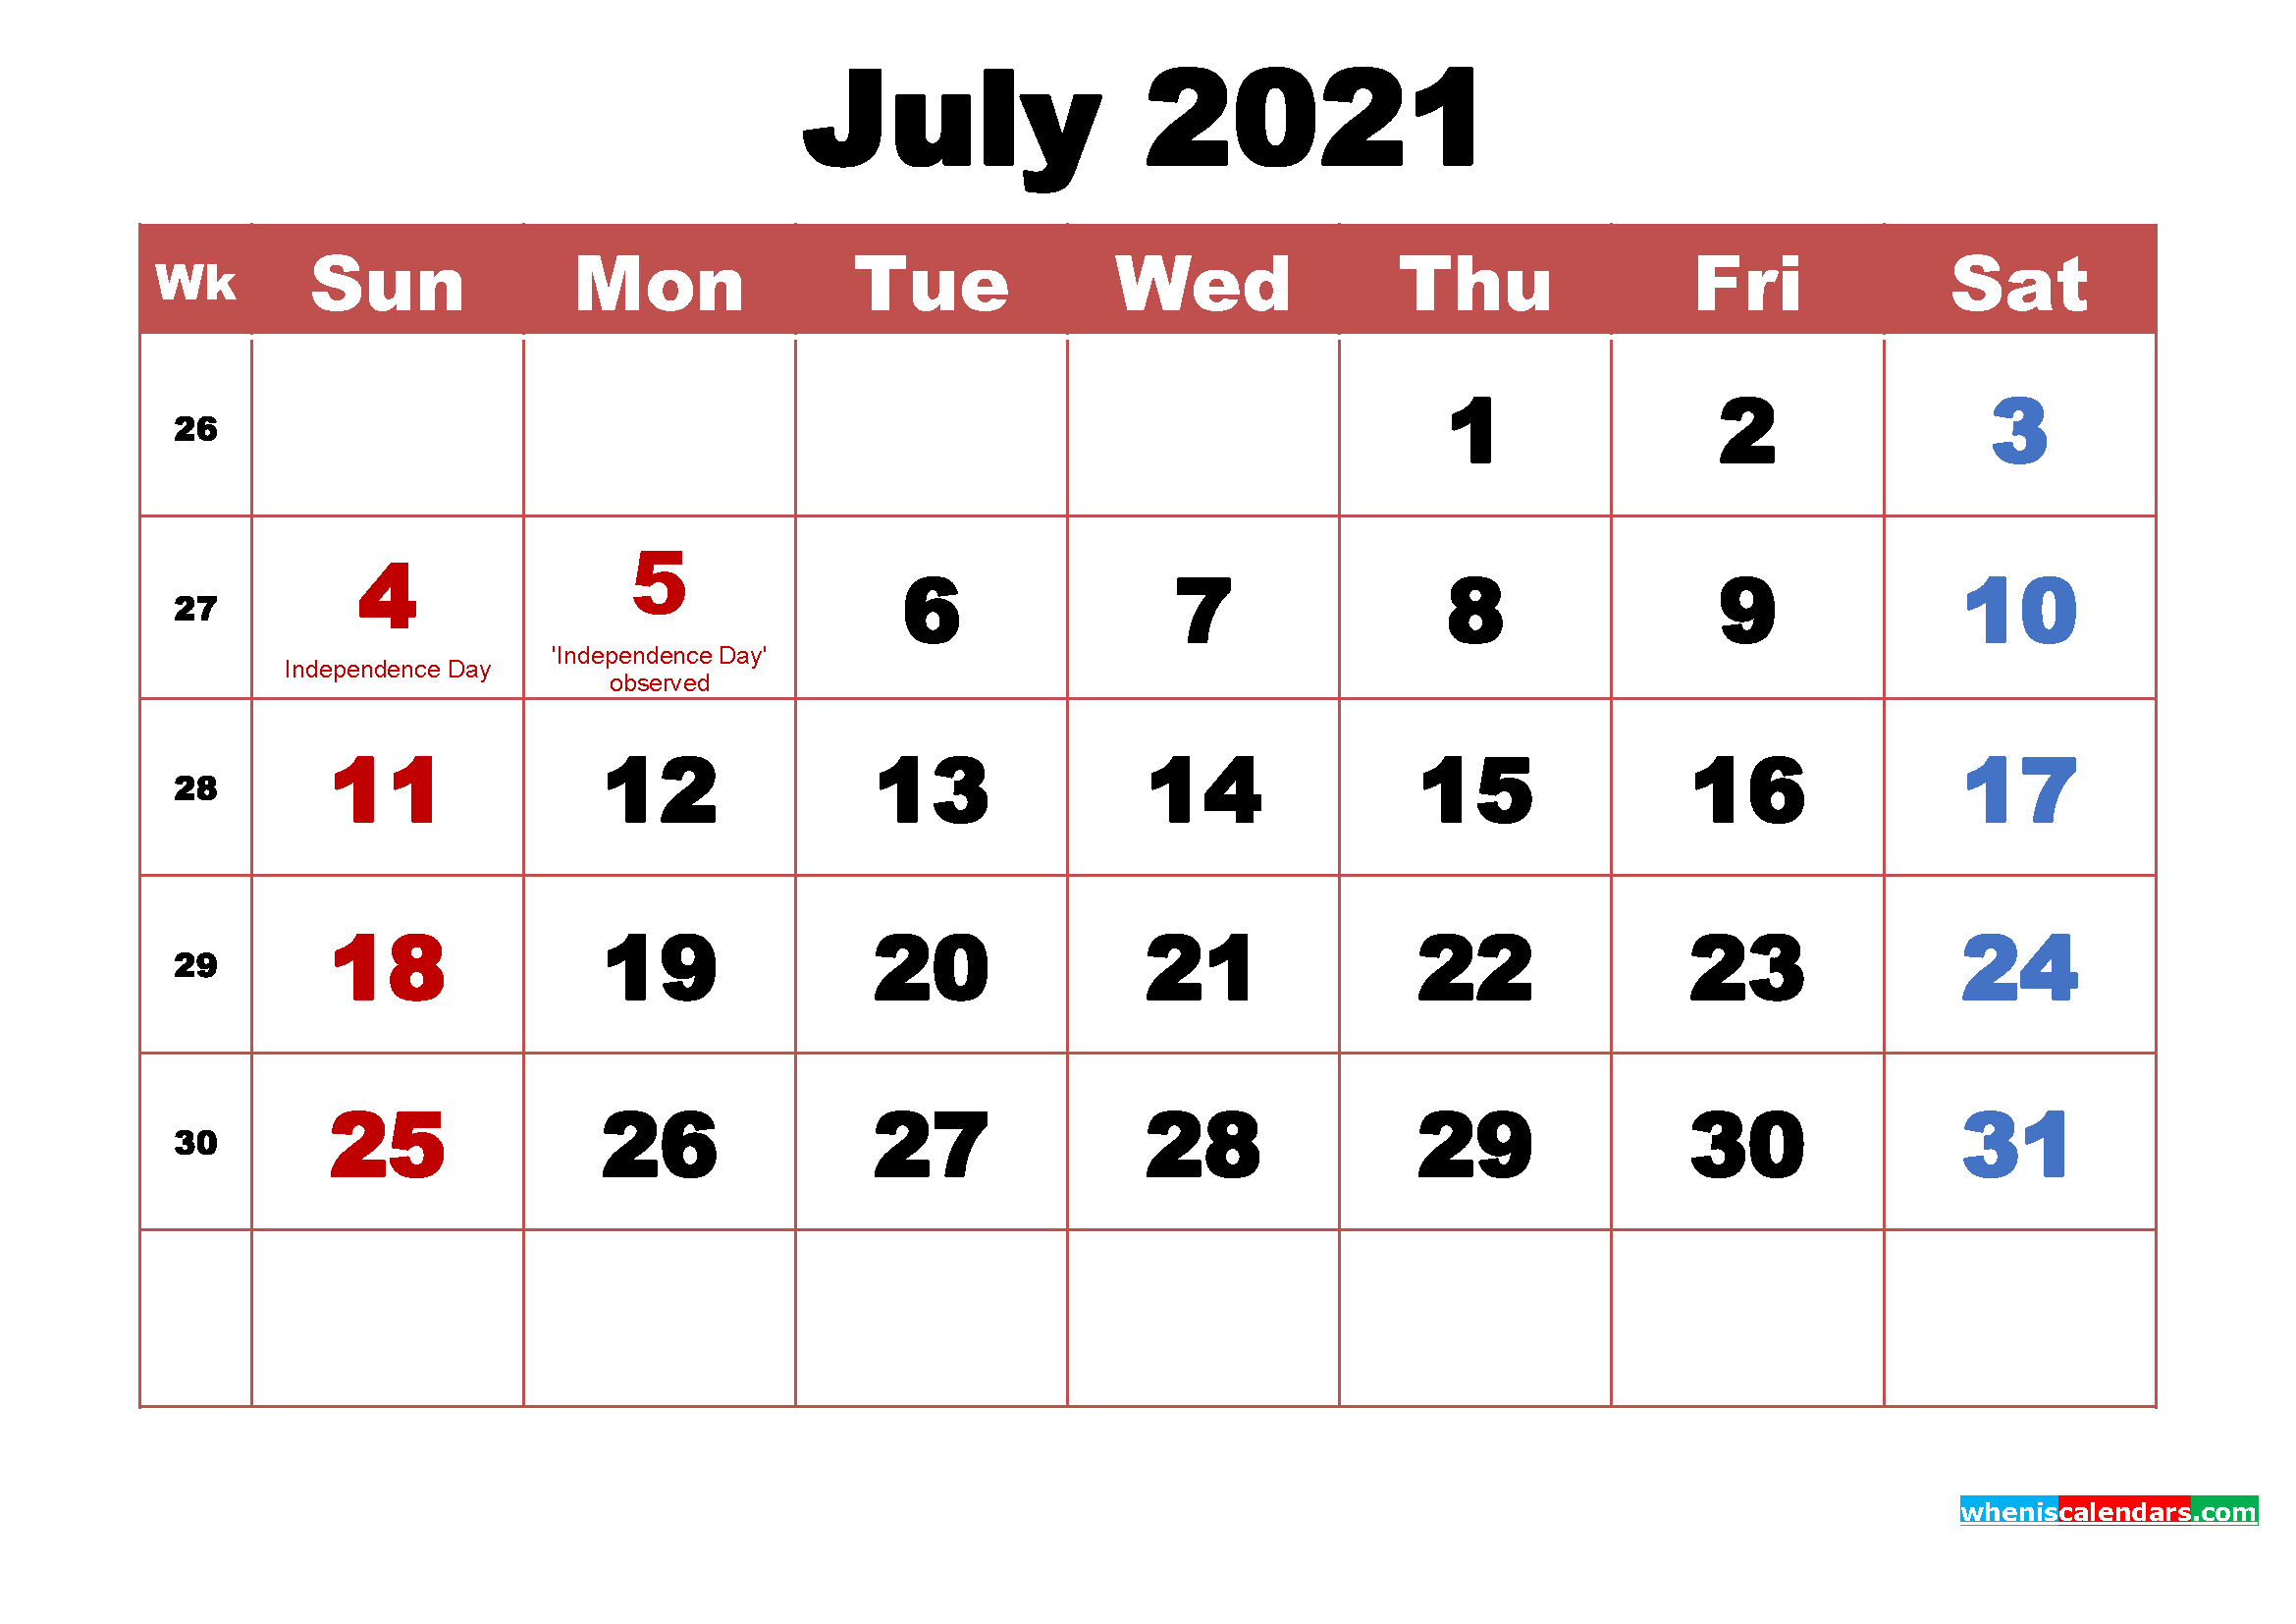 July 2021 Calendar Wallpaper High Resolution